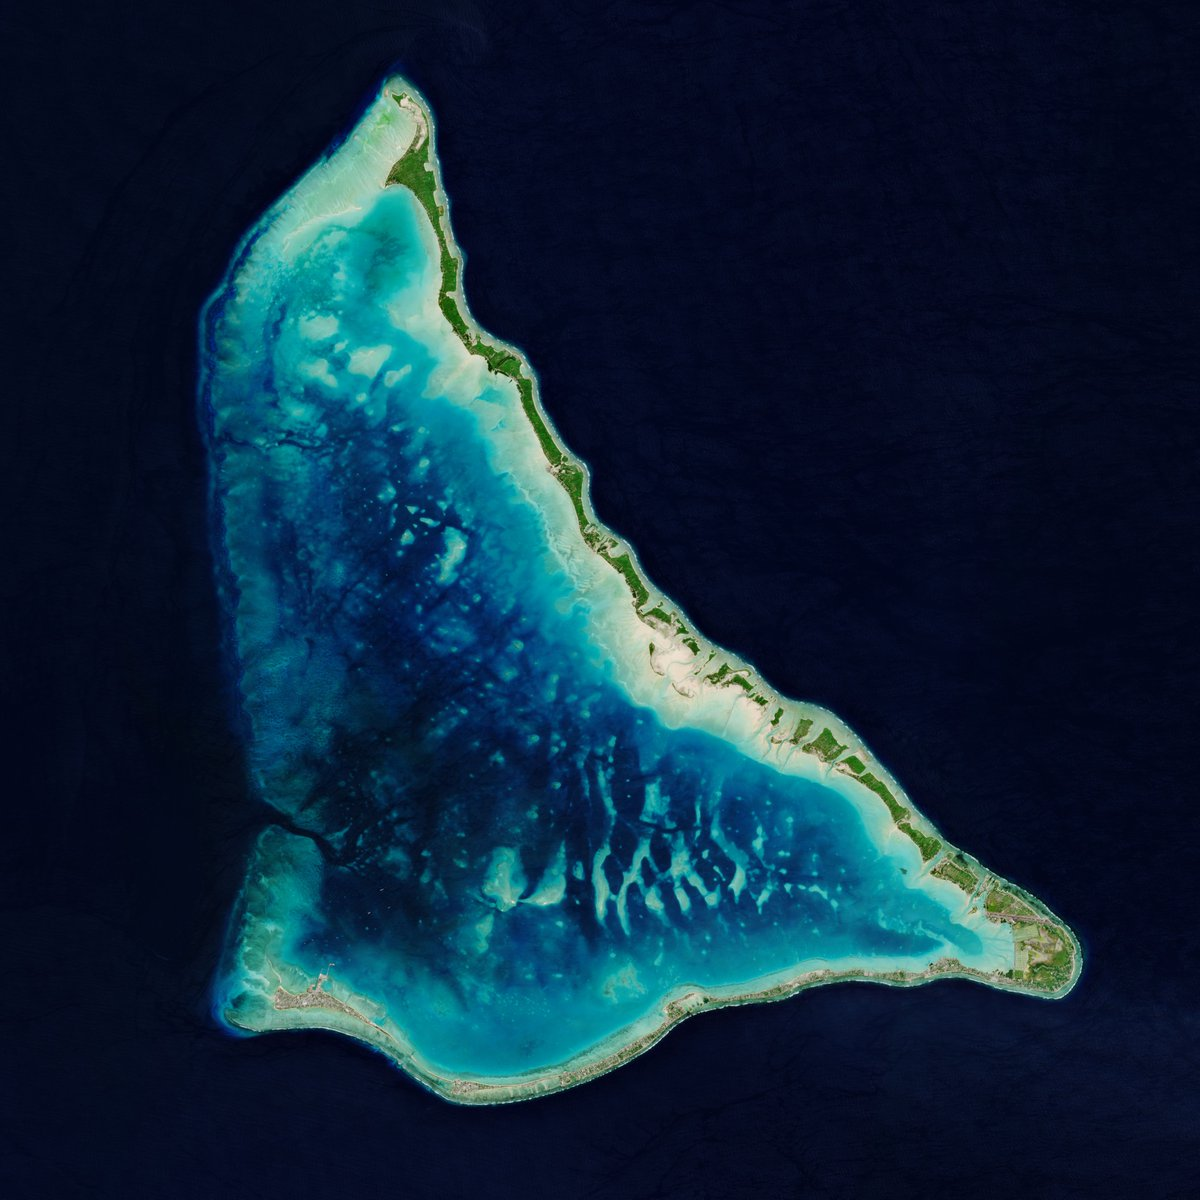 📸 This @CopernicusEU #Sentinel2 image shows the Tarawa Atoll in the Republic of Kiribati – a remote Pacific nation threatened by rising seas 👉 https://t.co/N9A6d6Ej1O https://t.co/zG7mUJgcs3